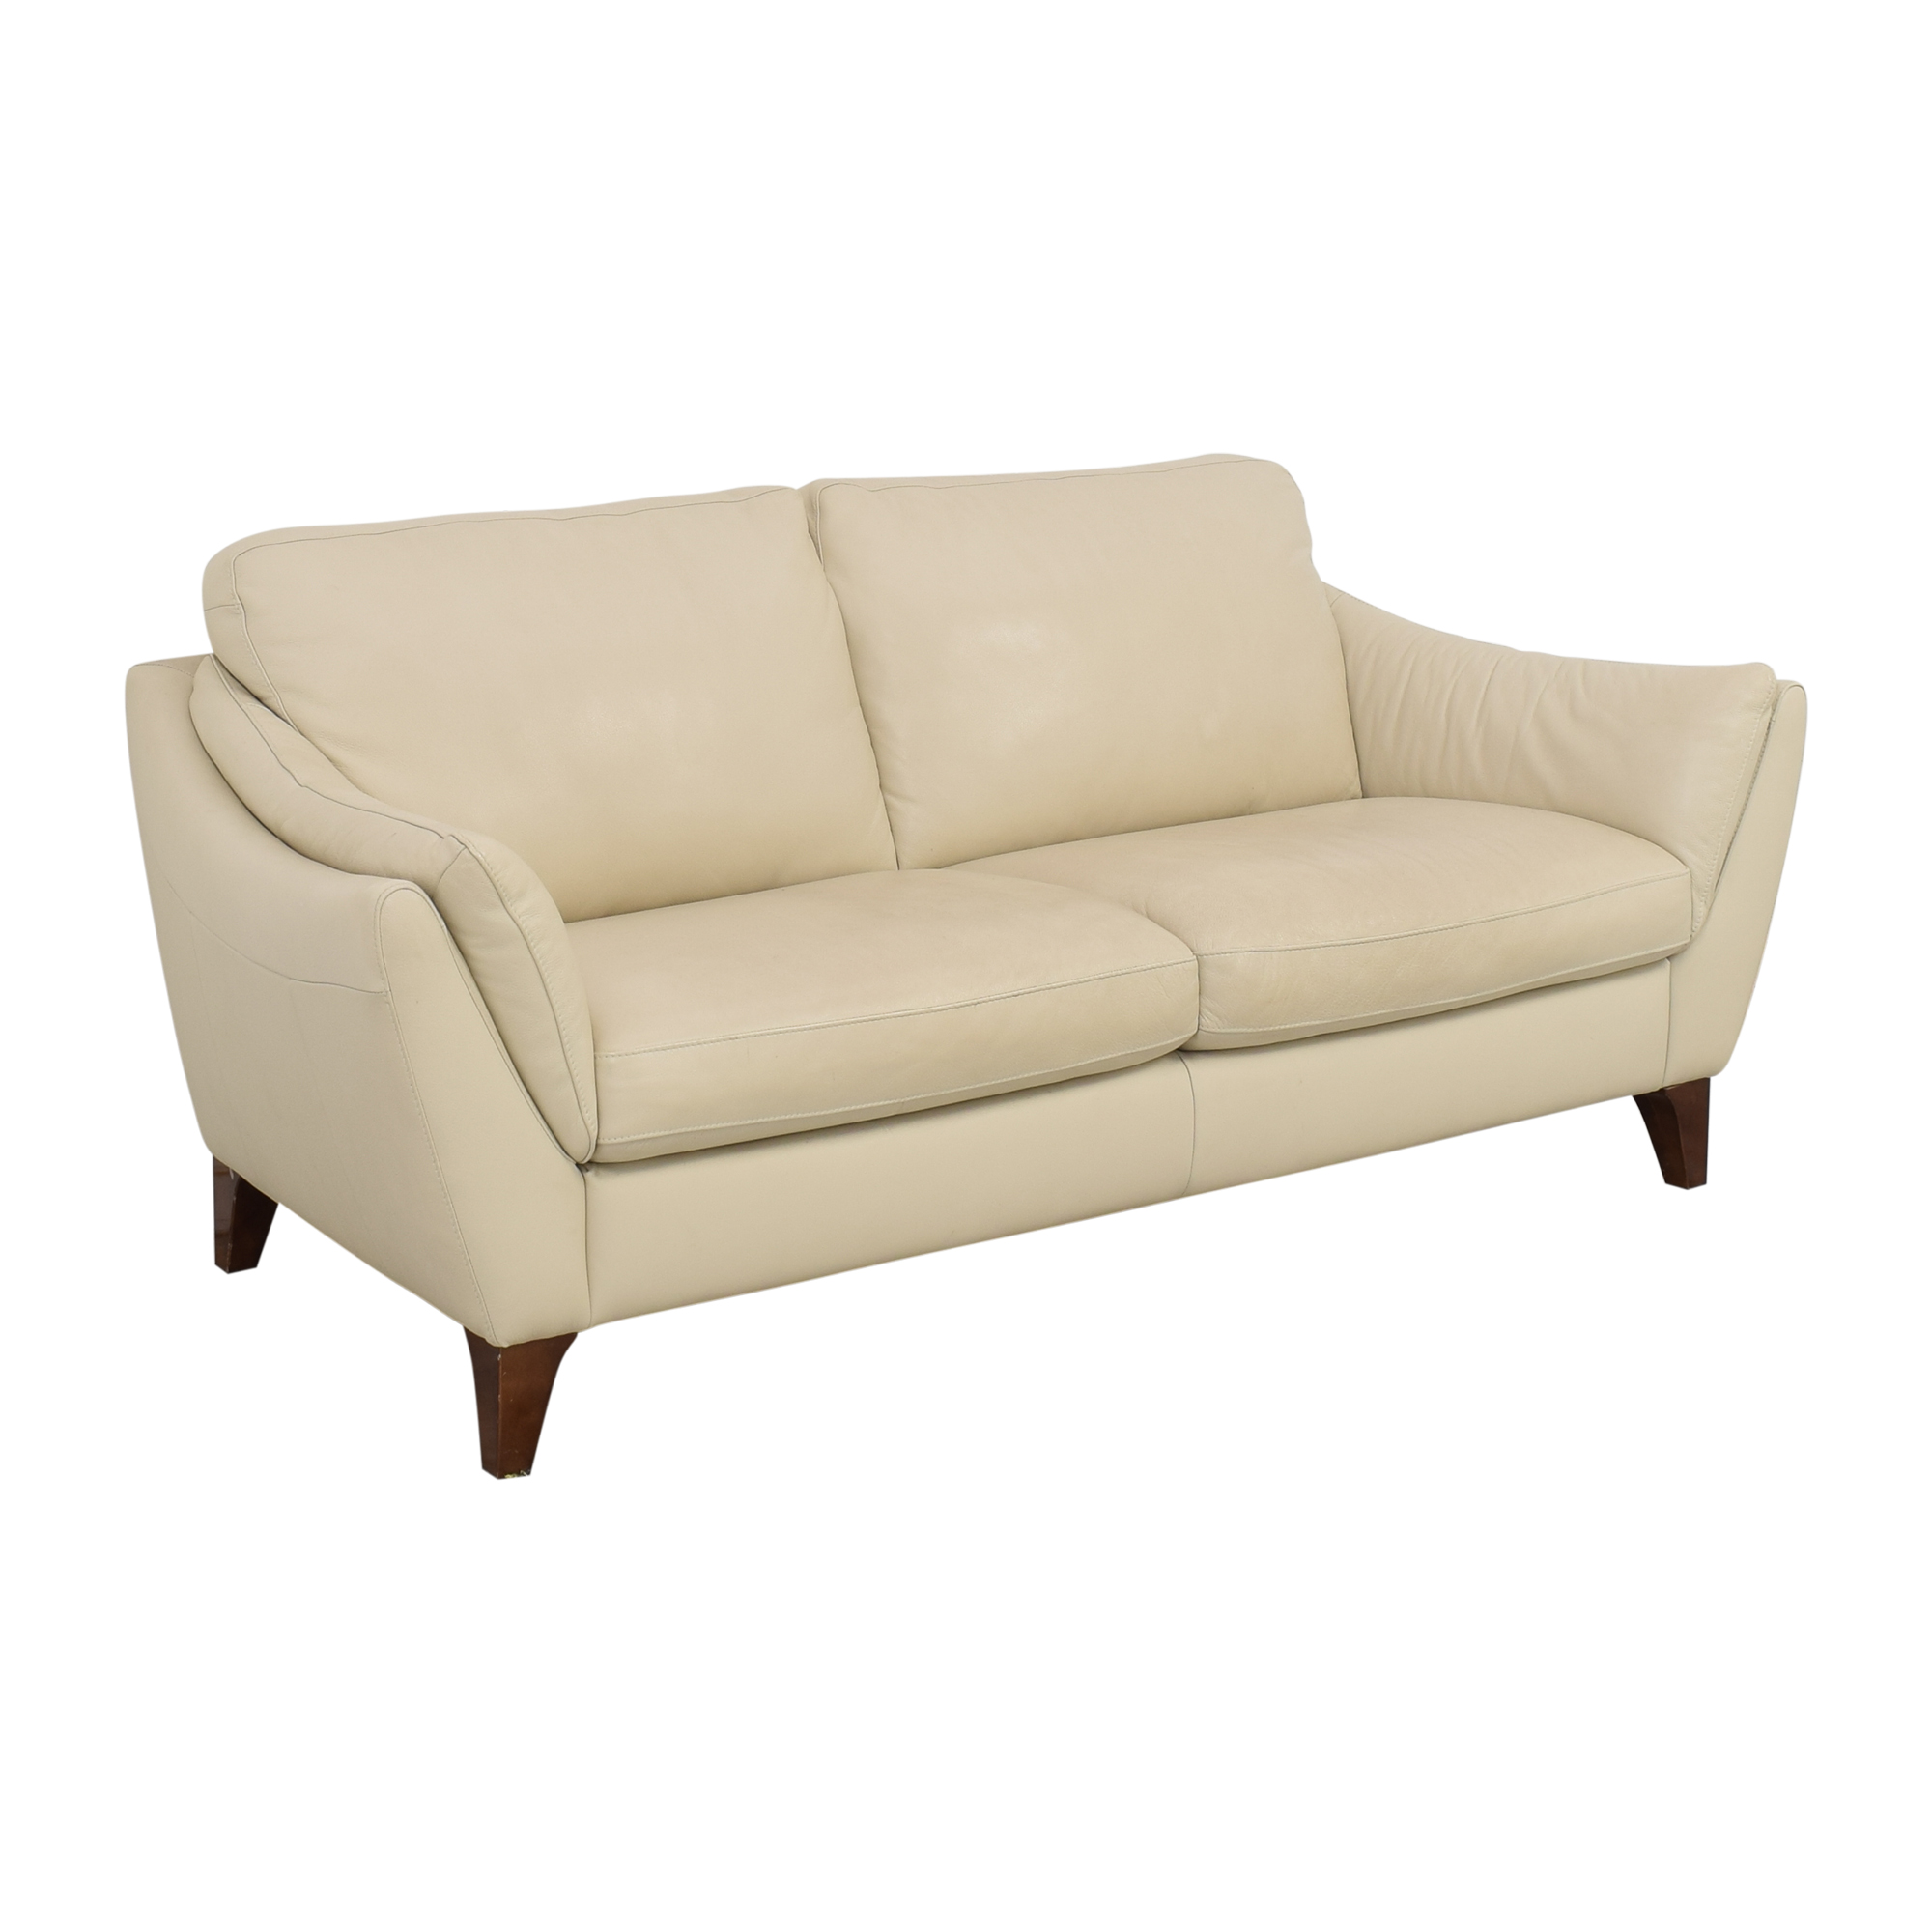 - 57% OFF - Italsofa Greccio Leather Sofa / Sofas